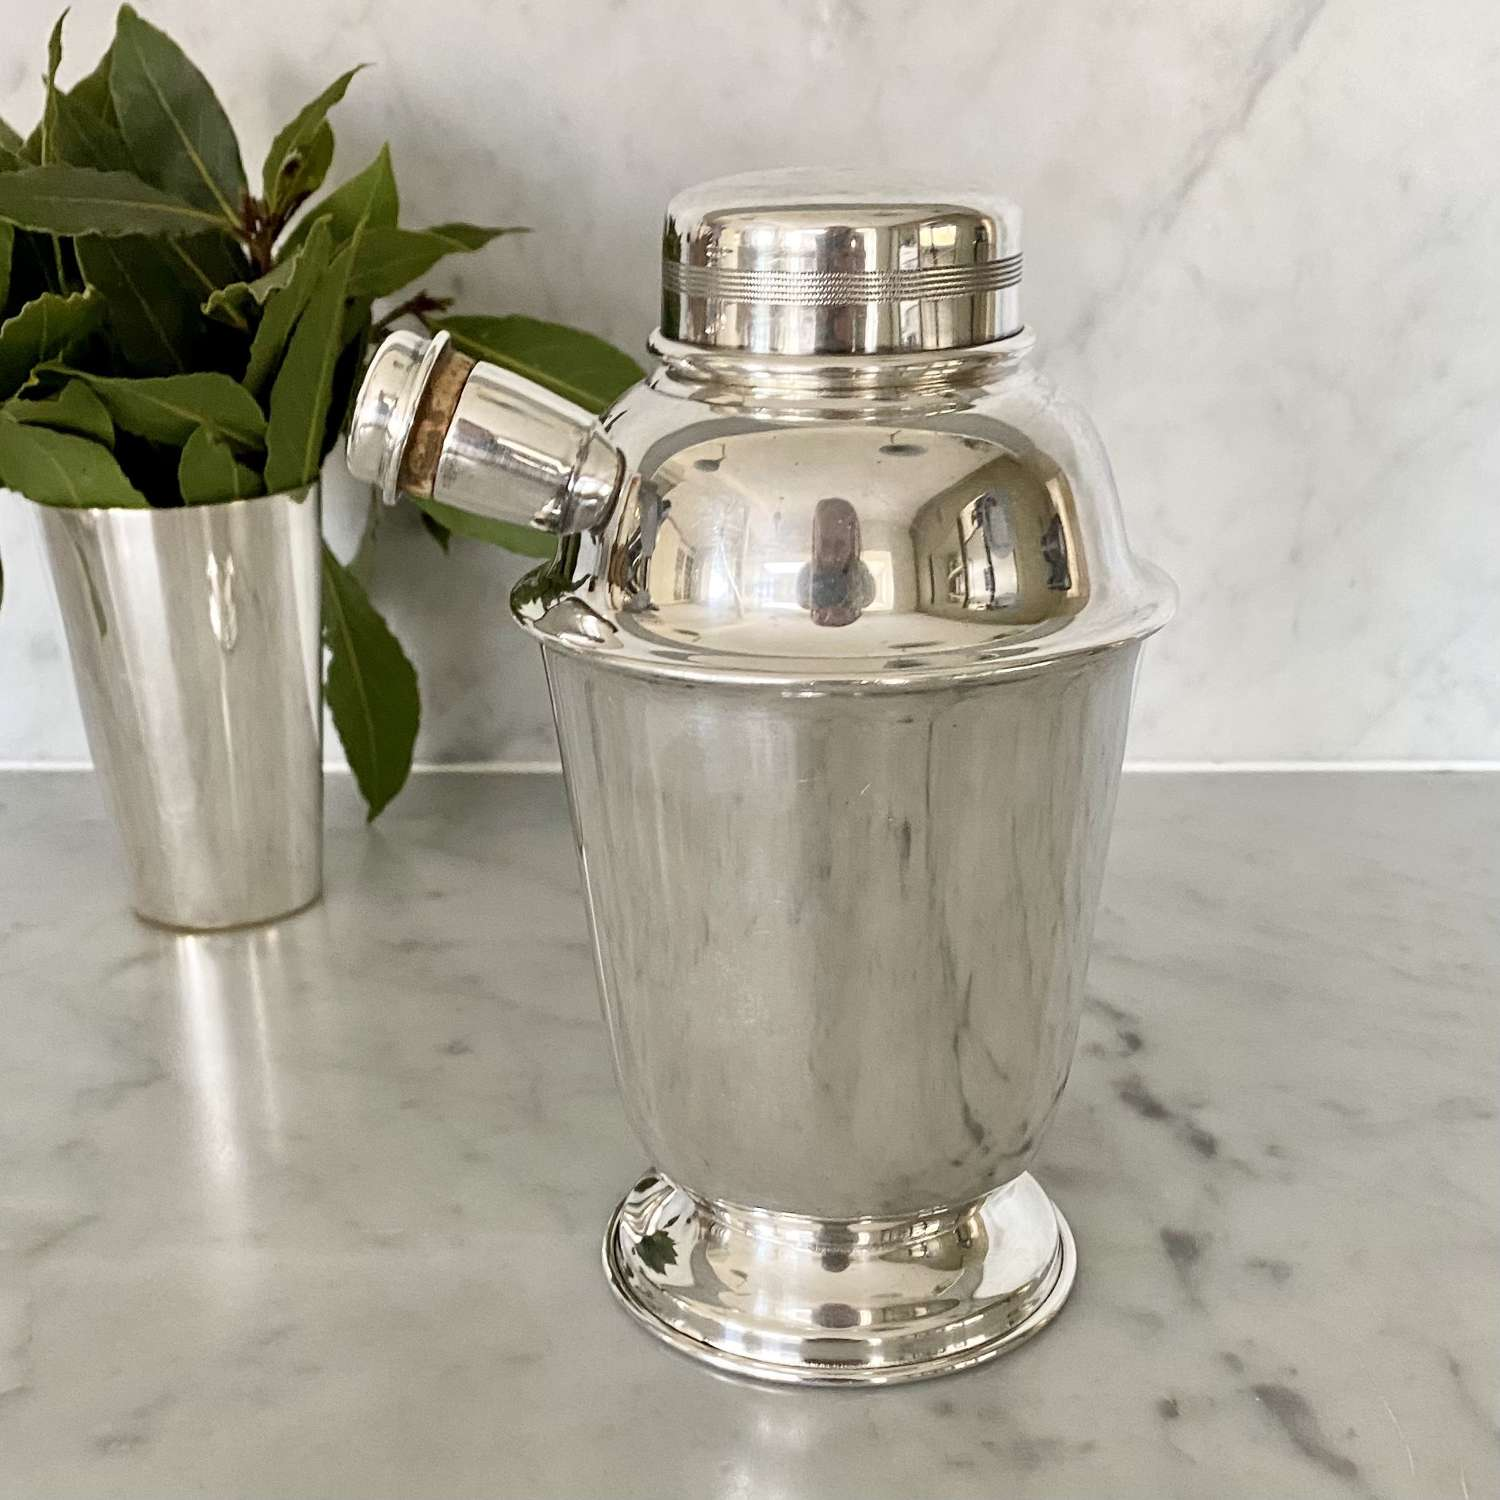 English Art Deco silver plated side spout cocktail shaker